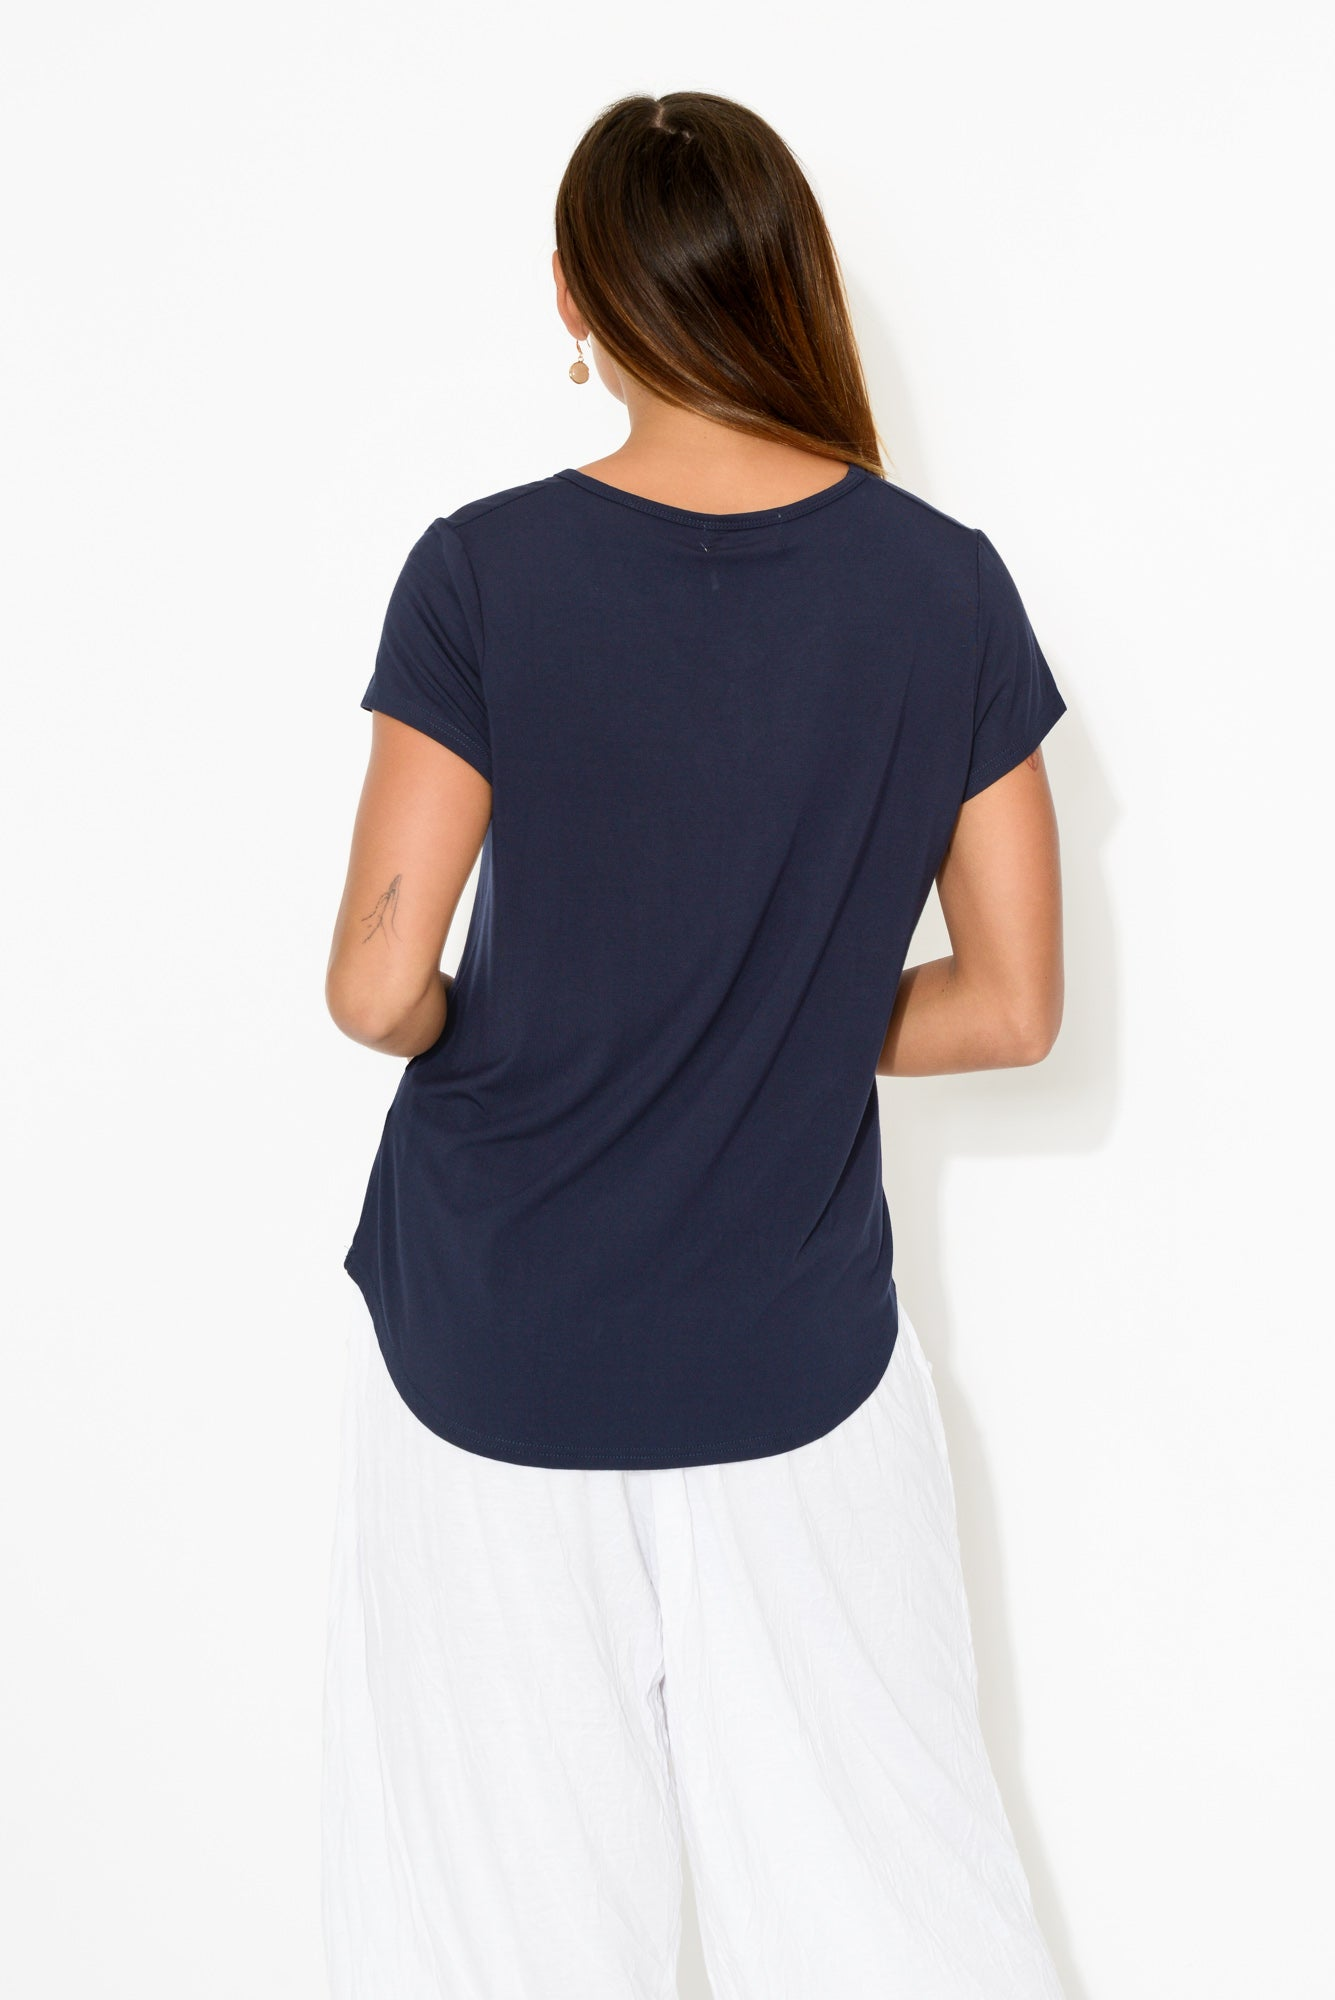 Paige Navy Bamboo Tee